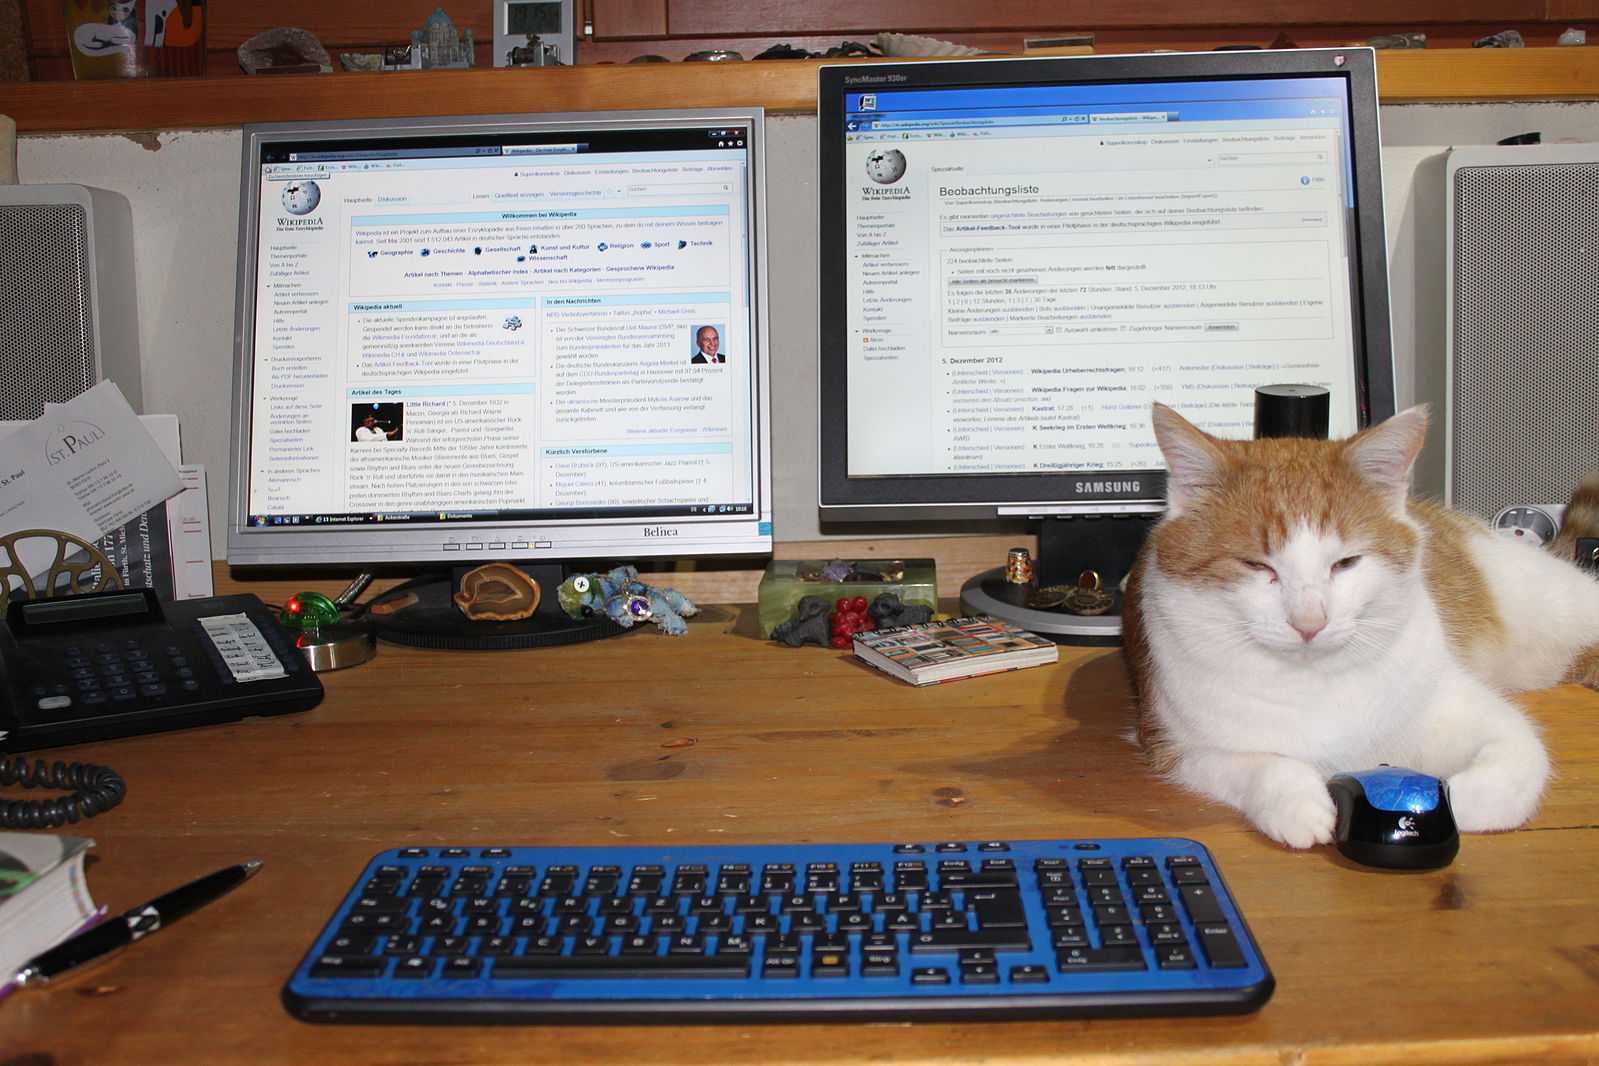 Writing_table_with_cat_and_mouse.jpeg.jpeg